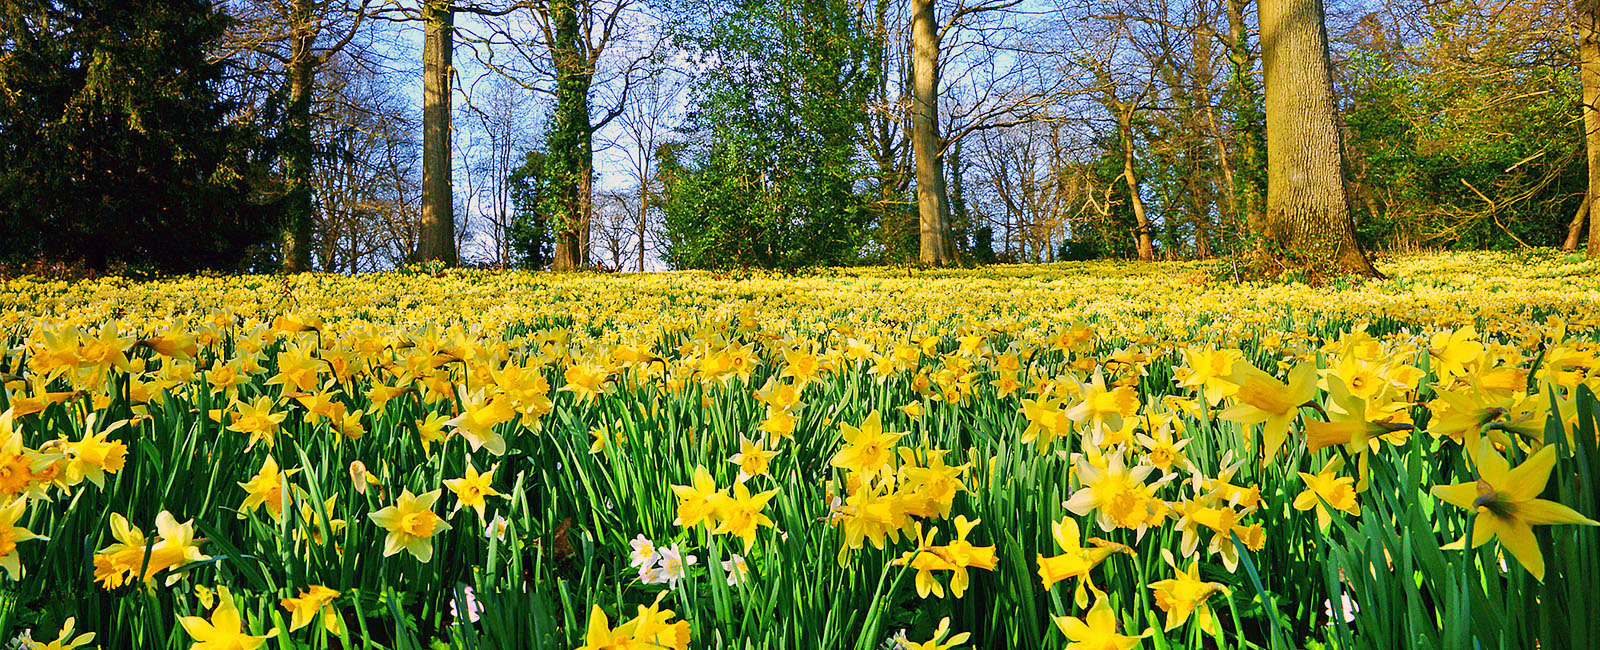 Southwell Acupuncture Celebrates Spring